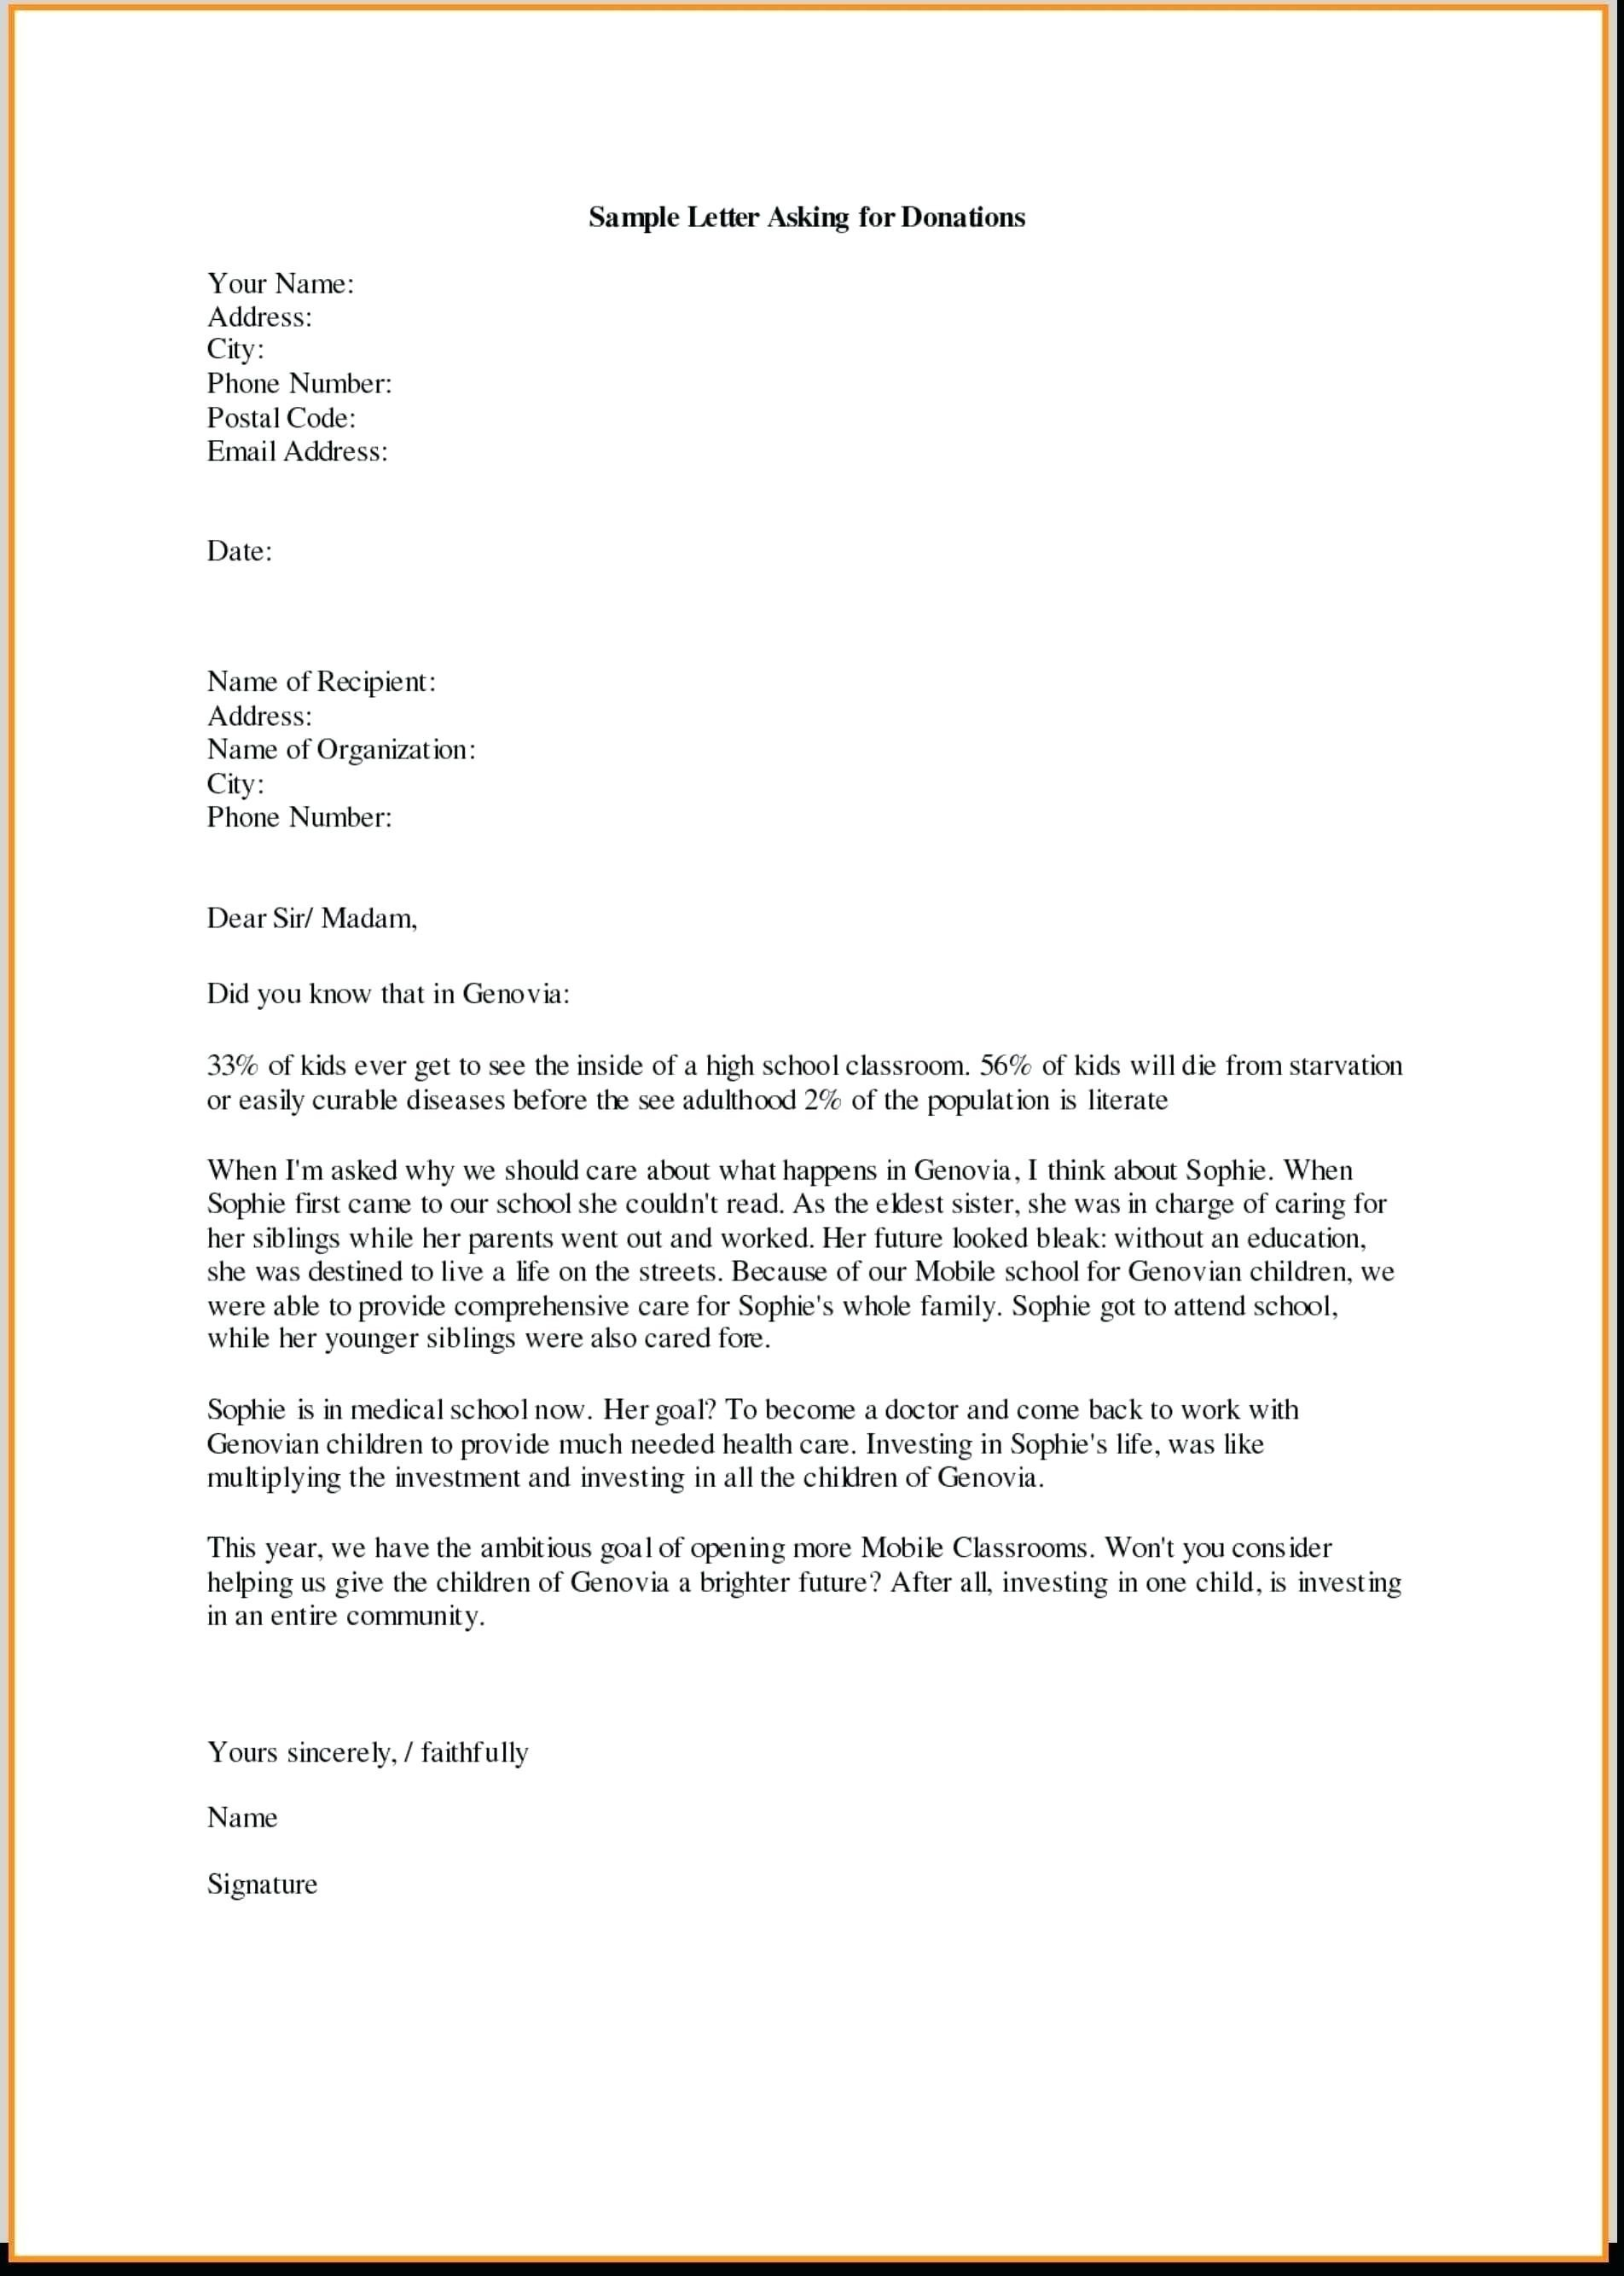 Letter asking for Donations Template - Samples Letters Request Donation Best Samples Letters Request